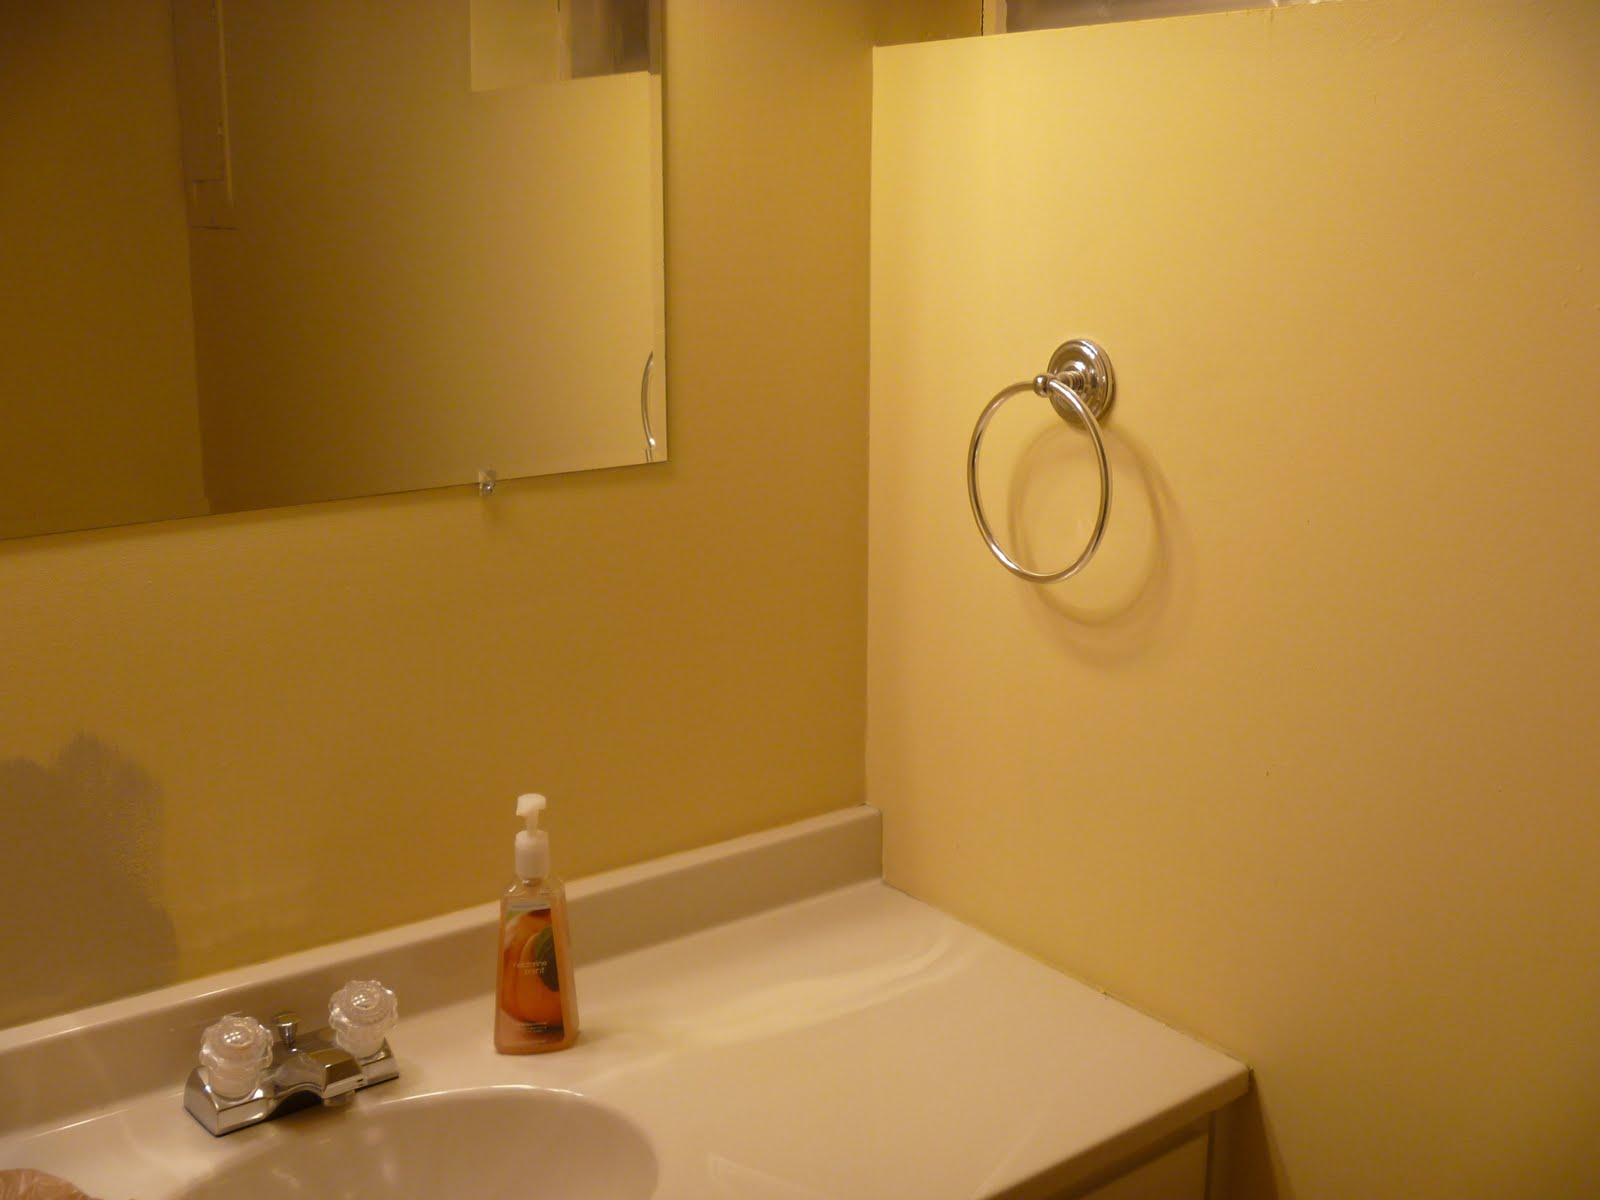 Paint for bathroom Photo - 1